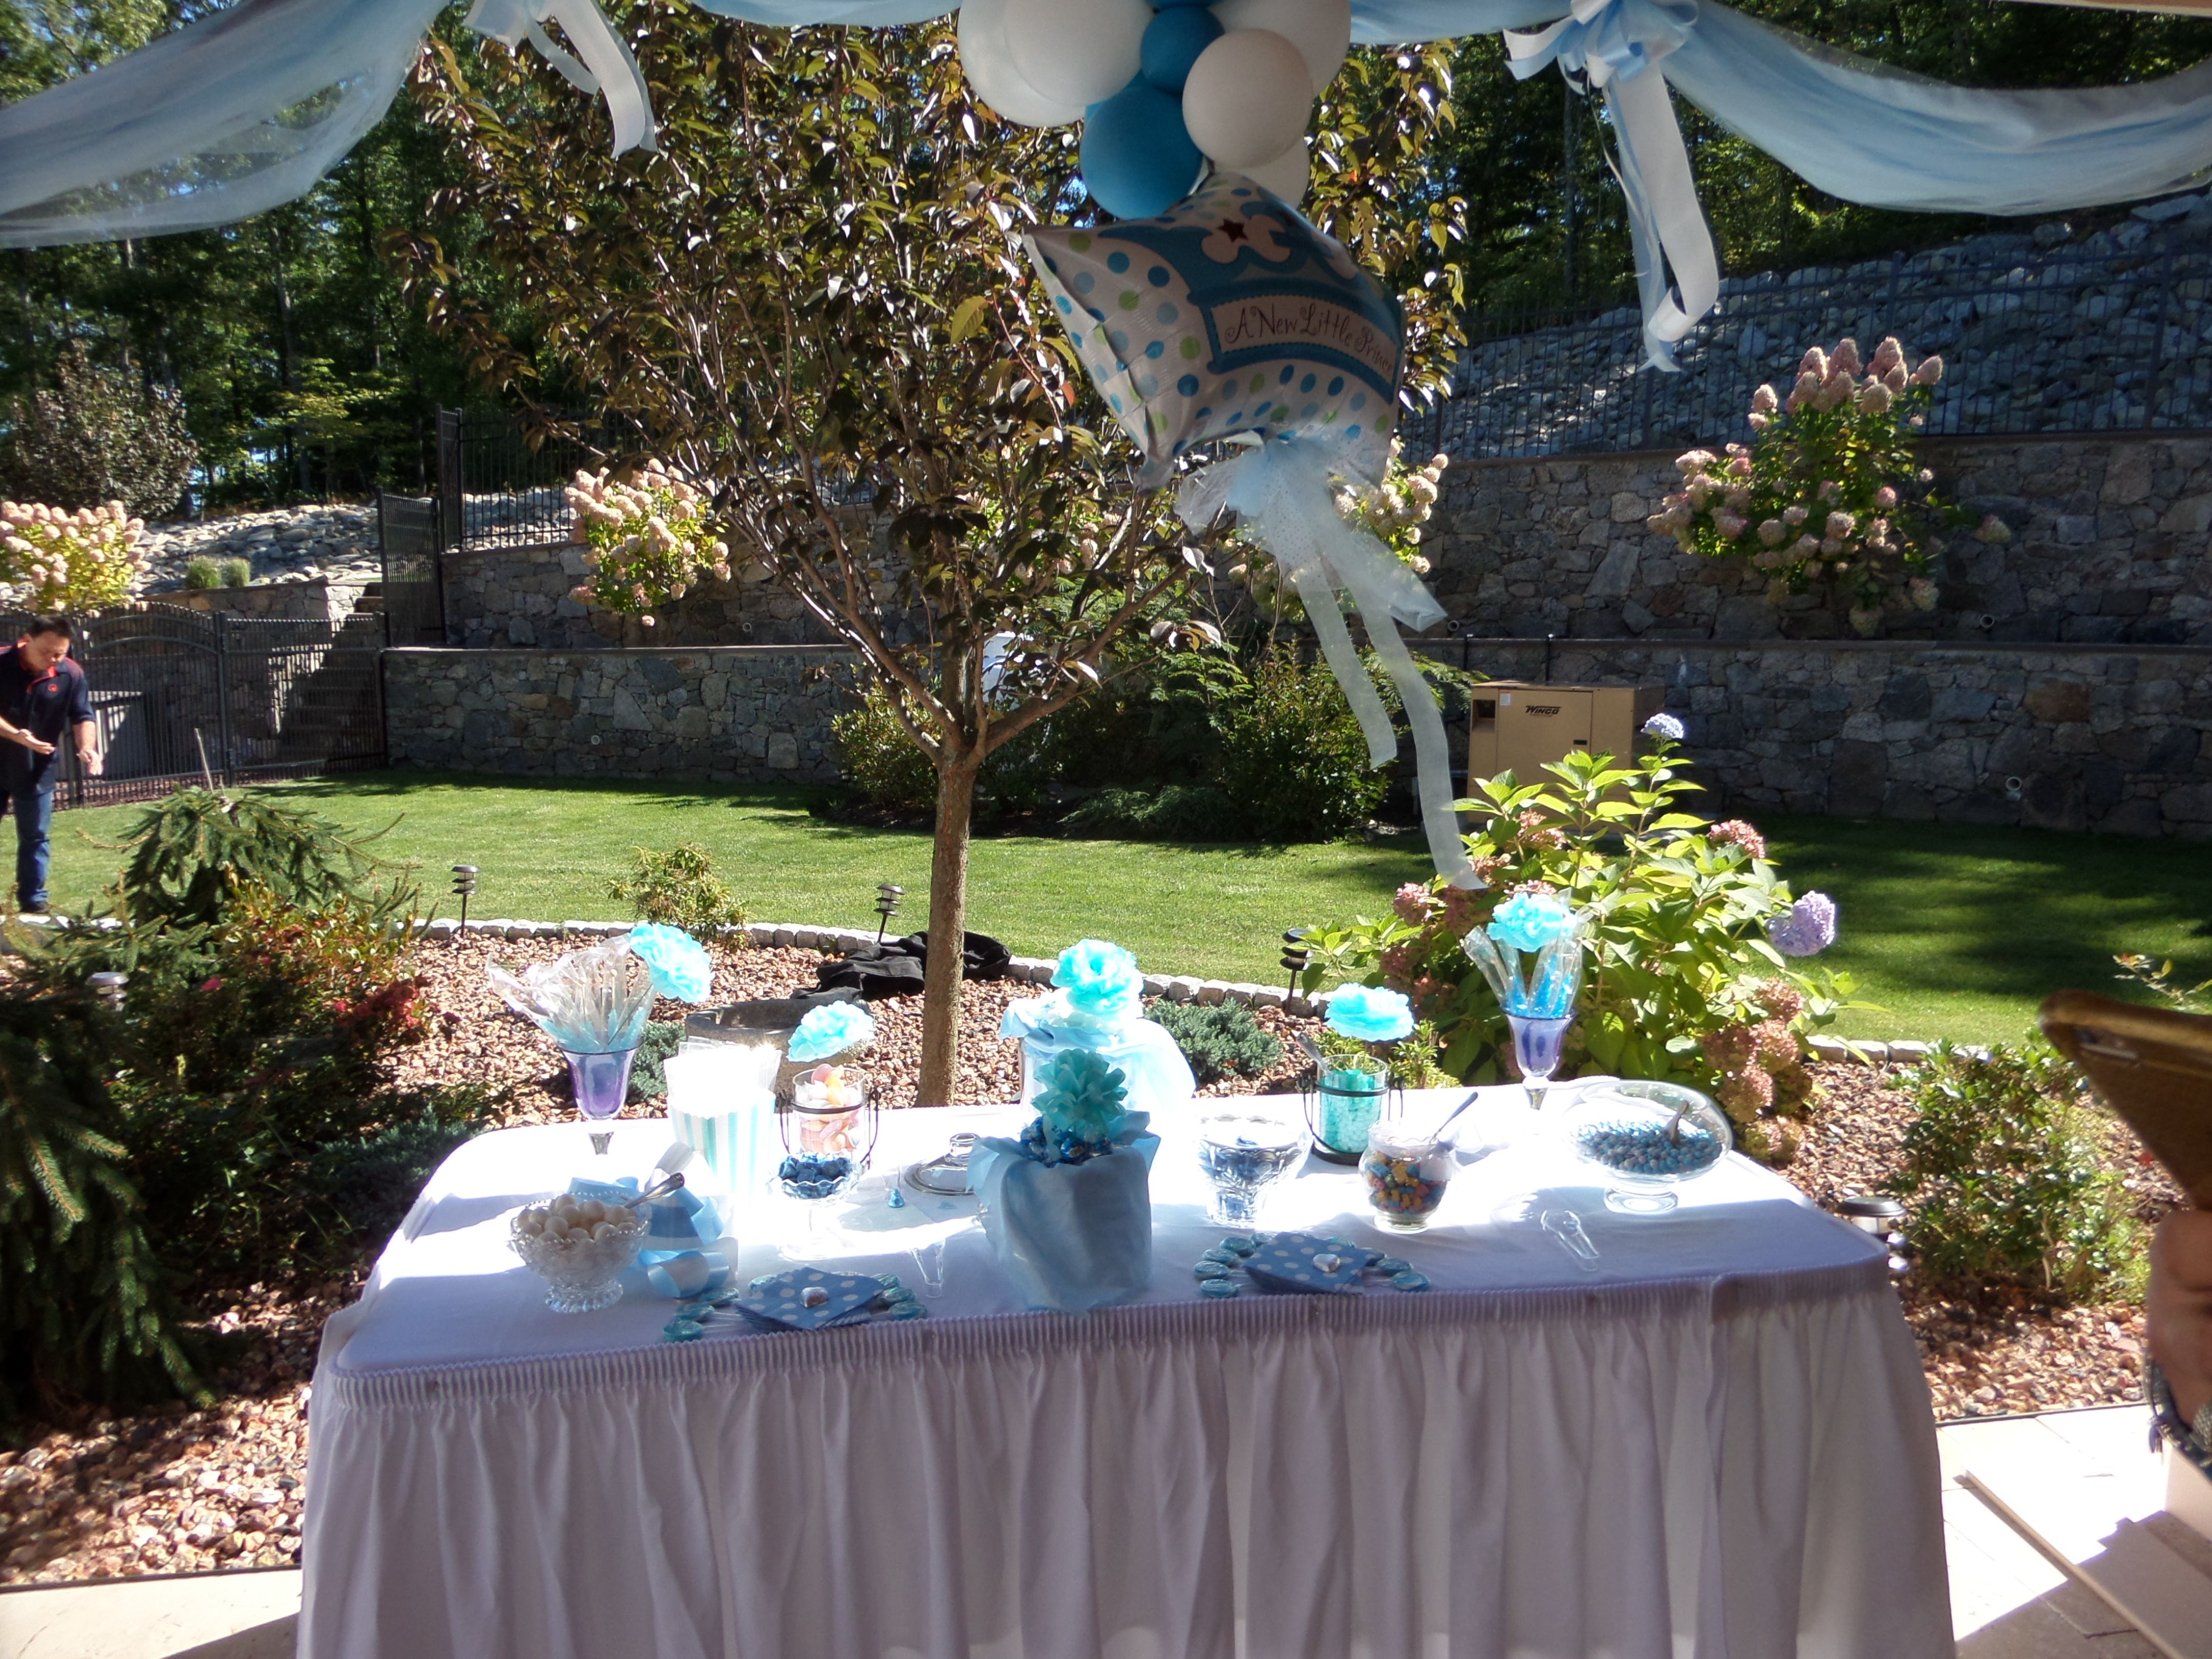 Candy table and decorations